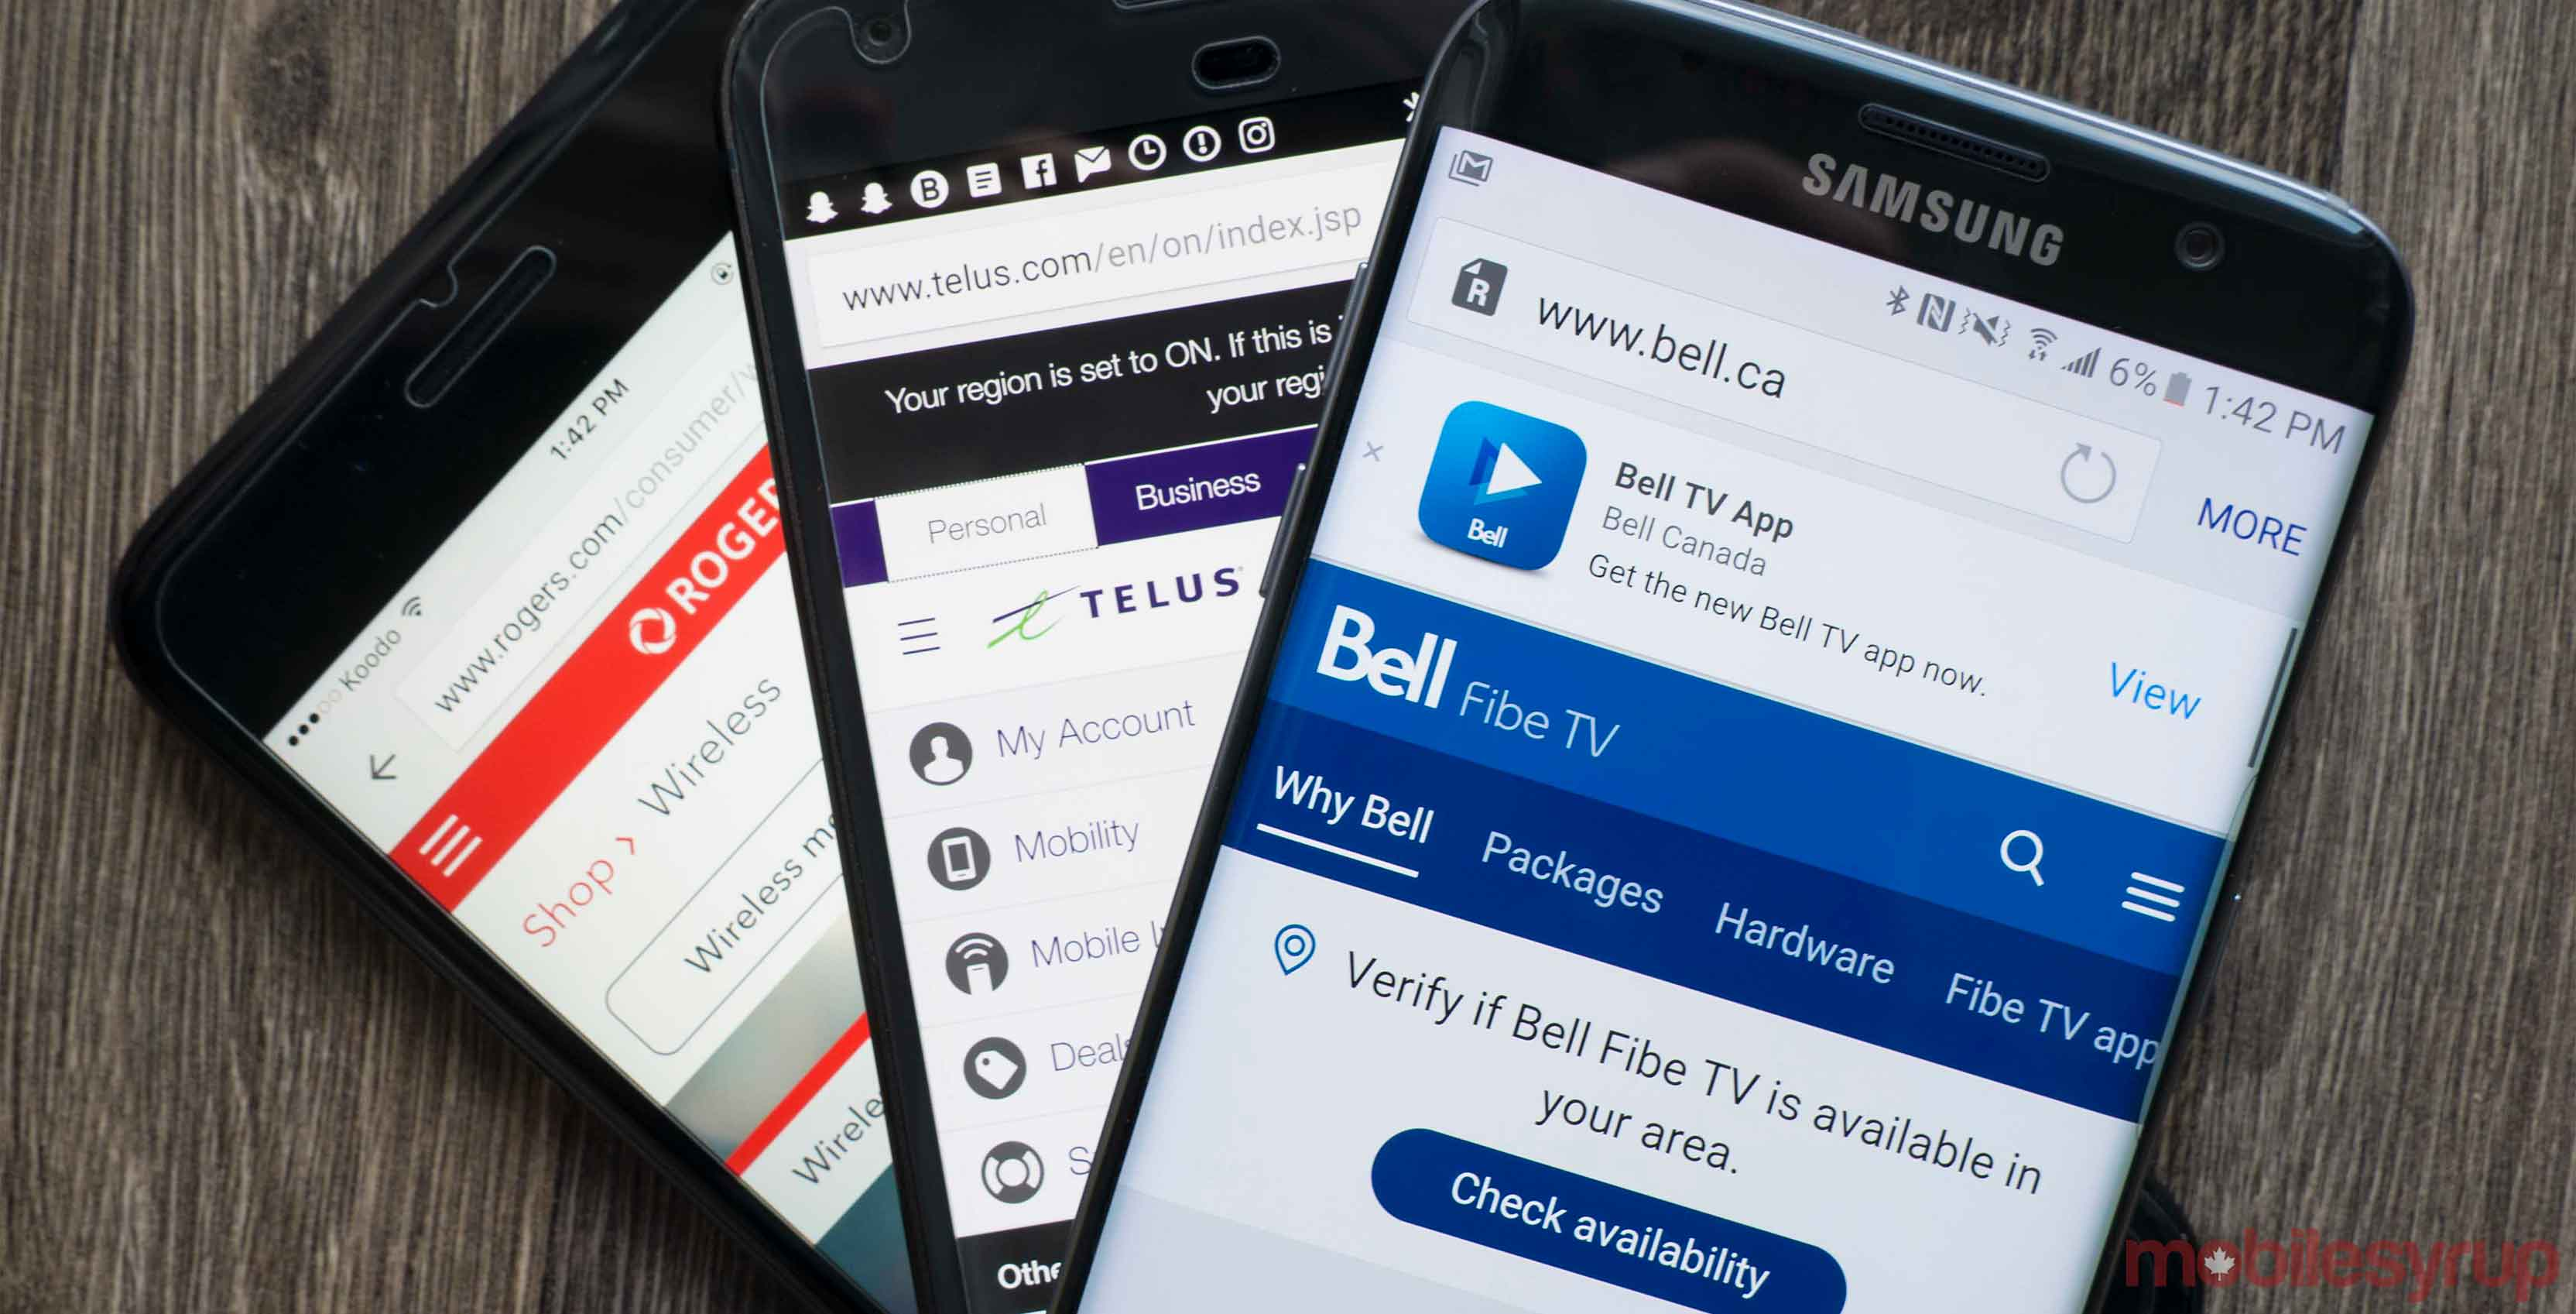 Bell, Telus and Rogers